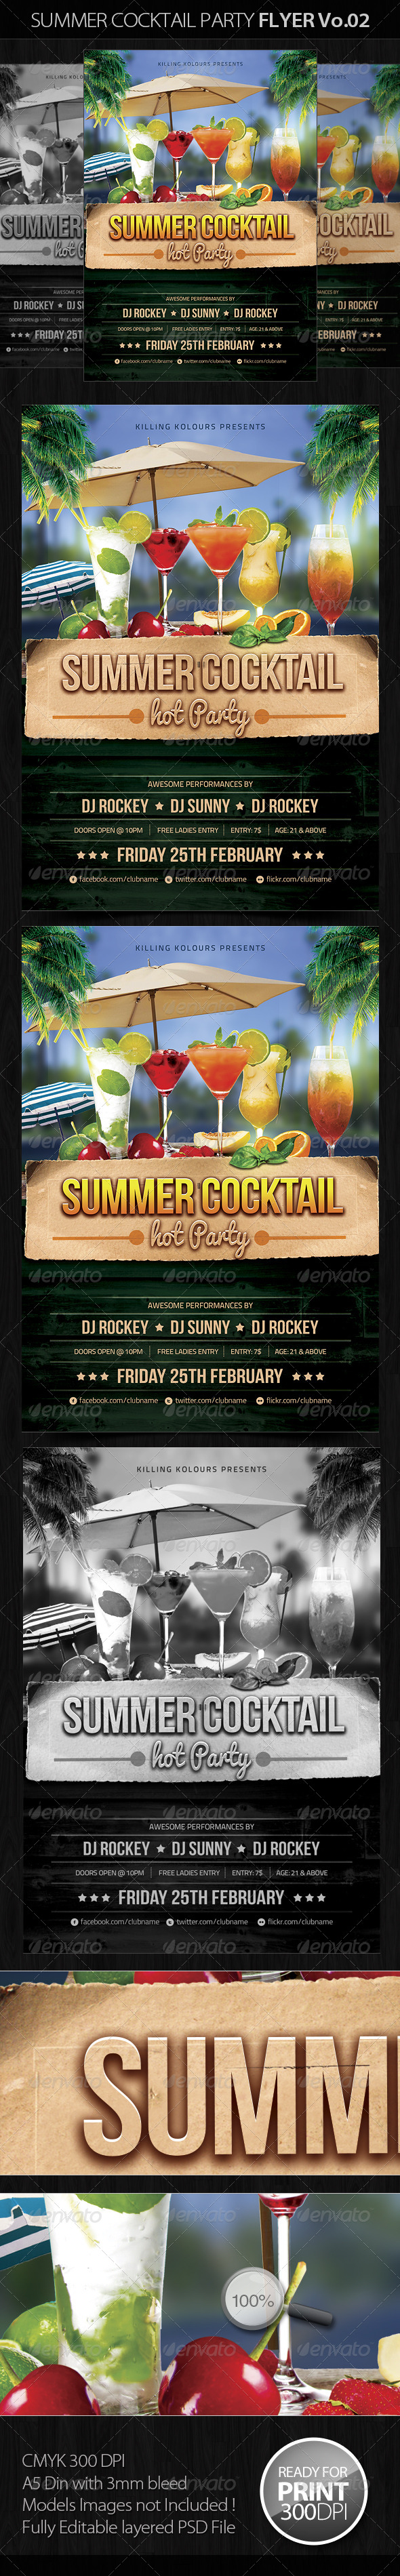 Summer Cocktail Party Flyer Vo.2 - Clubs & Parties Events